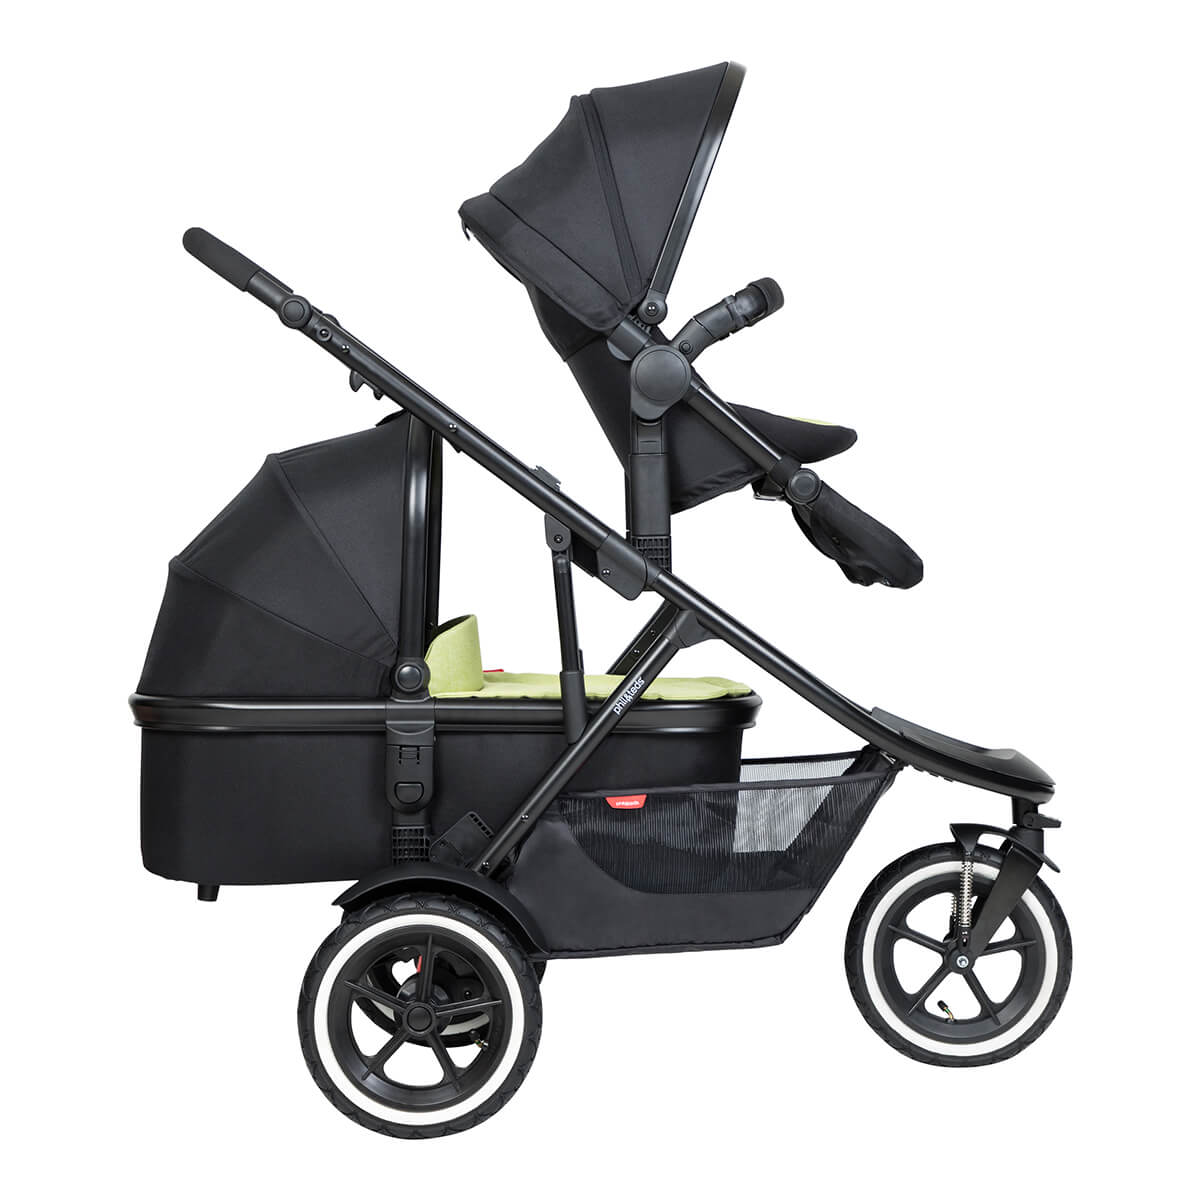 https://cdn.accentuate.io/4509900832845/19466204250306/philteds-sport-buggy-with-double-kit-extended-clip-and-snug-carrycot-side-view-v1626485397079.jpg?1200x1200